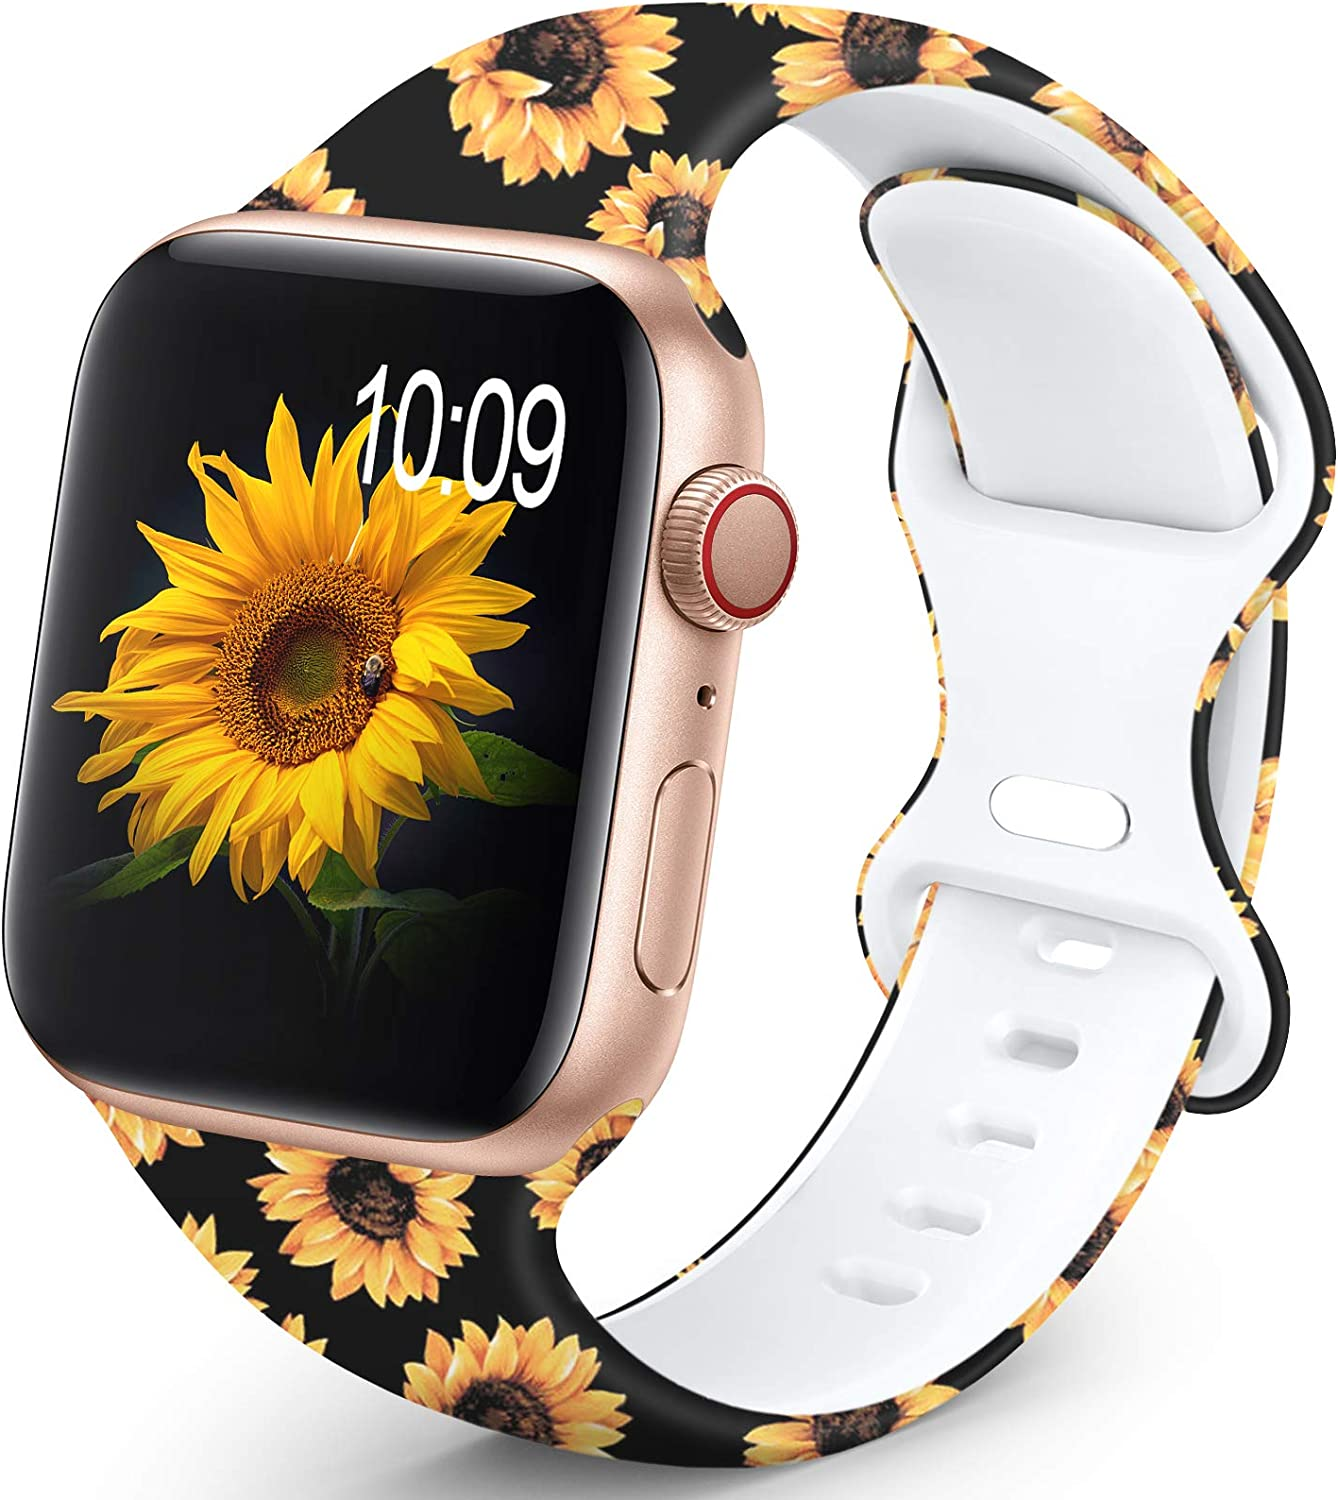 OHOTLOVE Compatible with Apple Watch 38mm 40mm 42mm 44mm for Women Men, Soft Silicone Pattern Printed Replacement Wristband Band For Iwatch Series 6 & Series 5 4 3 2 1.Sunflower A